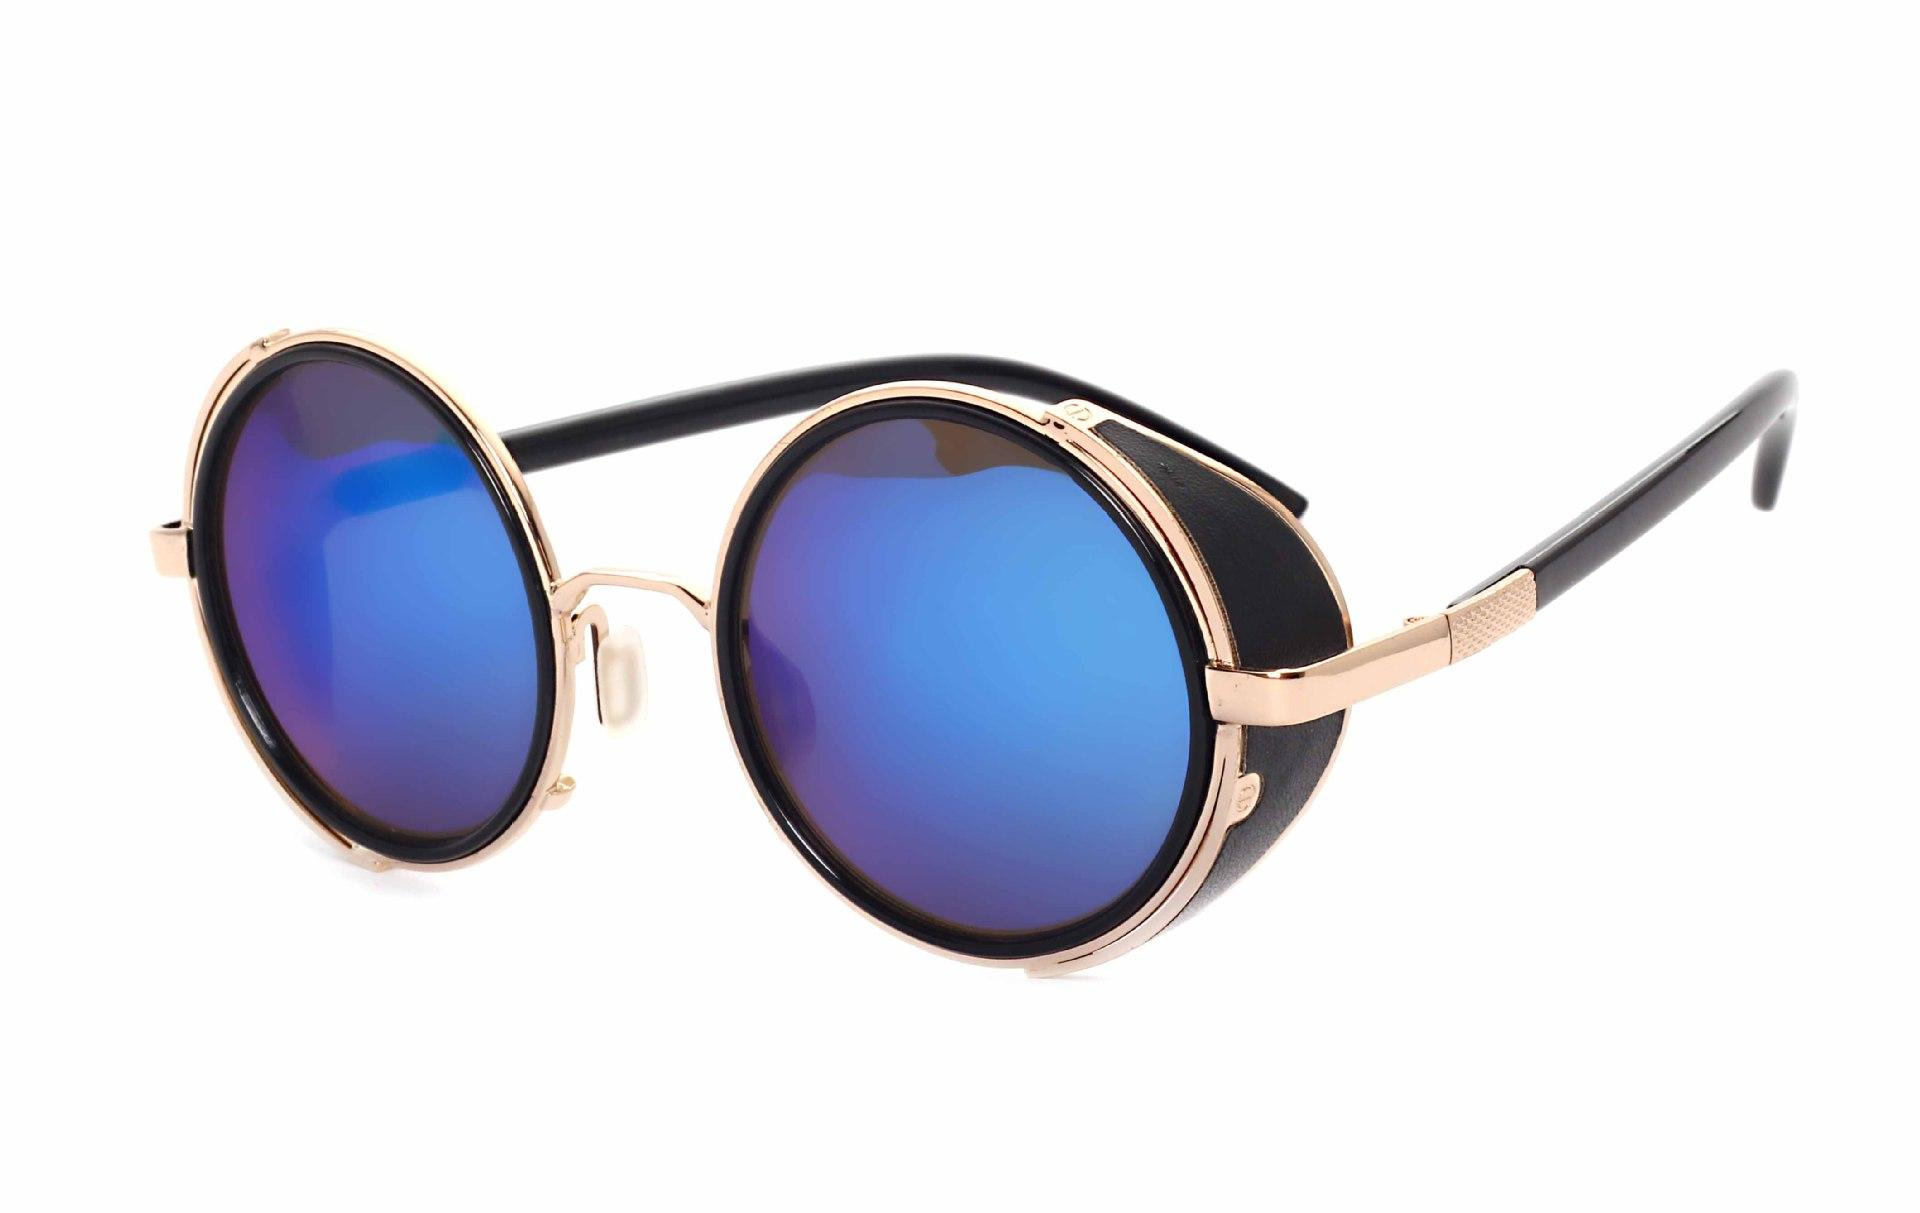 08db6eb5764 Vintage Sunglasses Men Women Brand Gold Metal Flat Top Round Steampunk  Sunglasses Retro Windproof Mirror Glasses